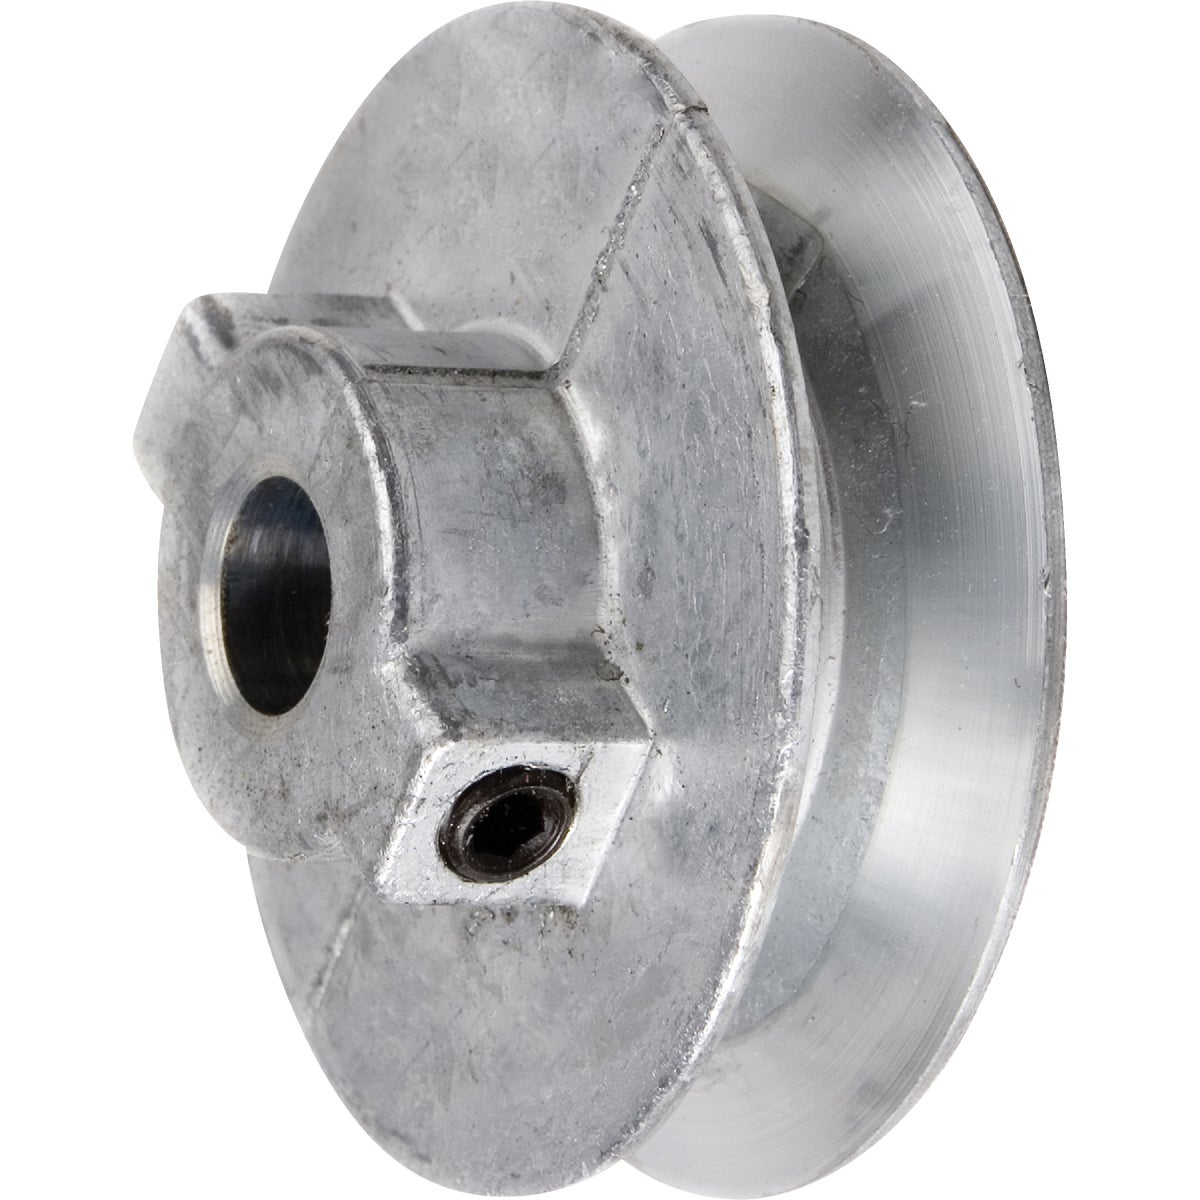 2X3/4 PULLEY - 200A7 by Chicago Die Casting